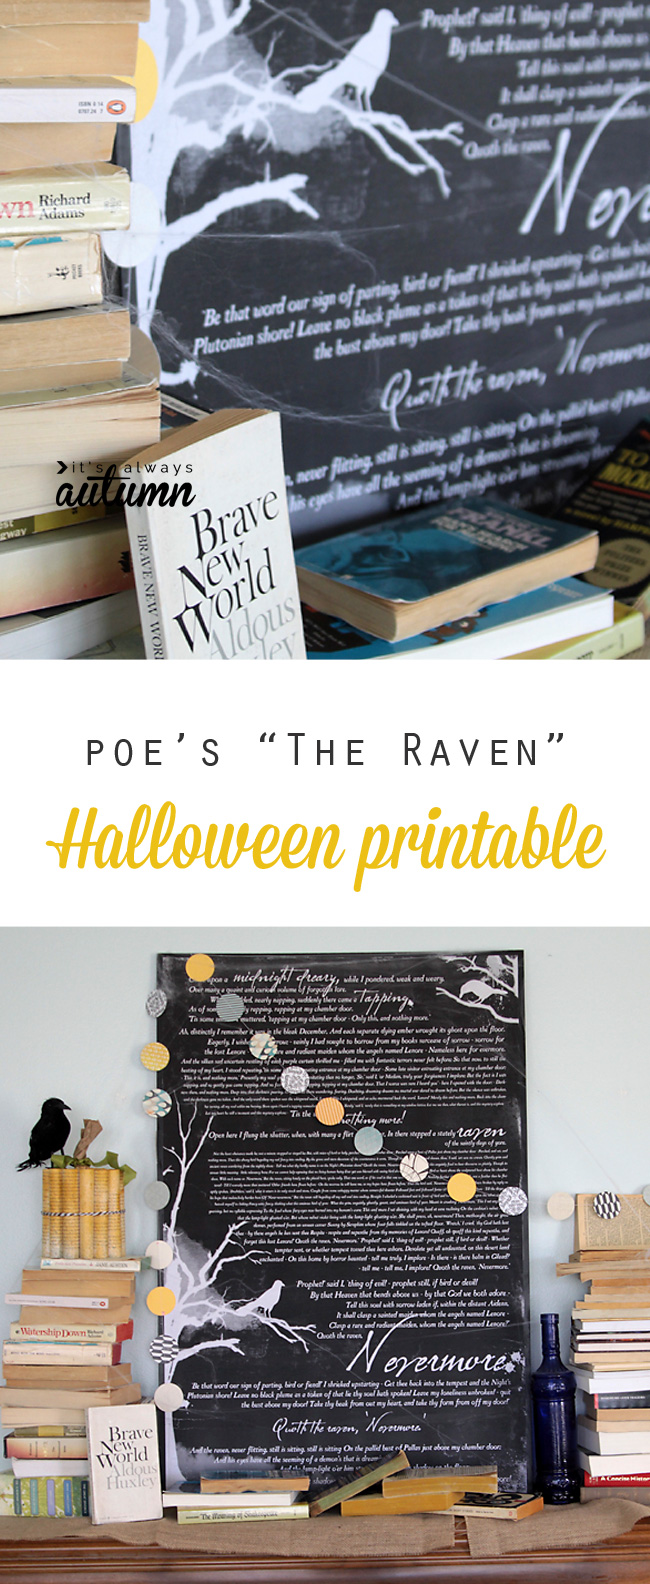 "Free Halloween printable wall art: ""The Raven"" by Edgar Allen Poe. Tutorial for printing and mounting for about $10."